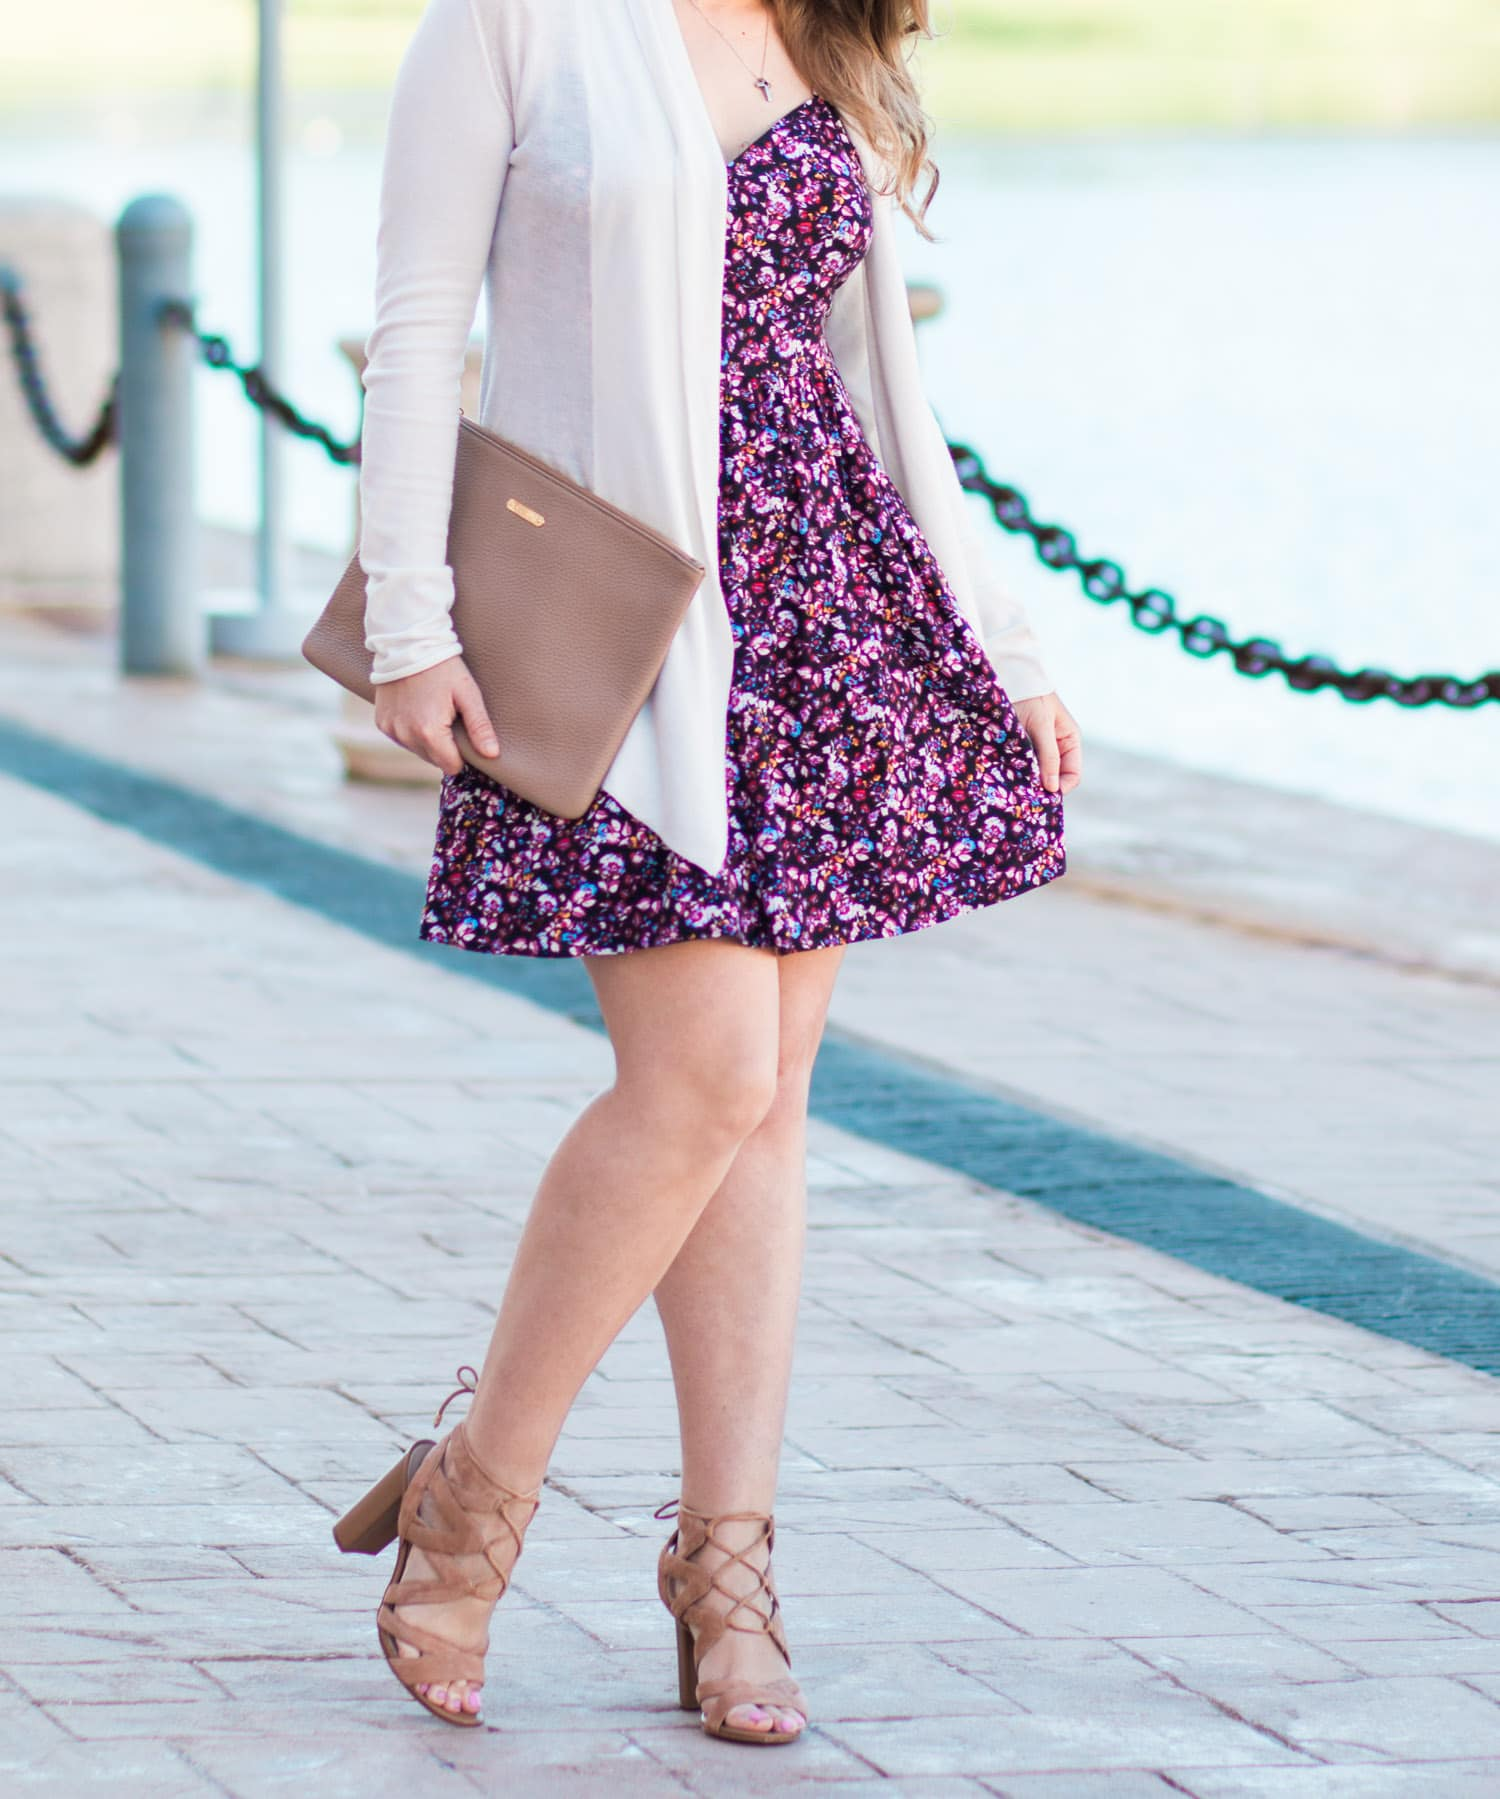 Spring floral fashion outfit walking Orlando